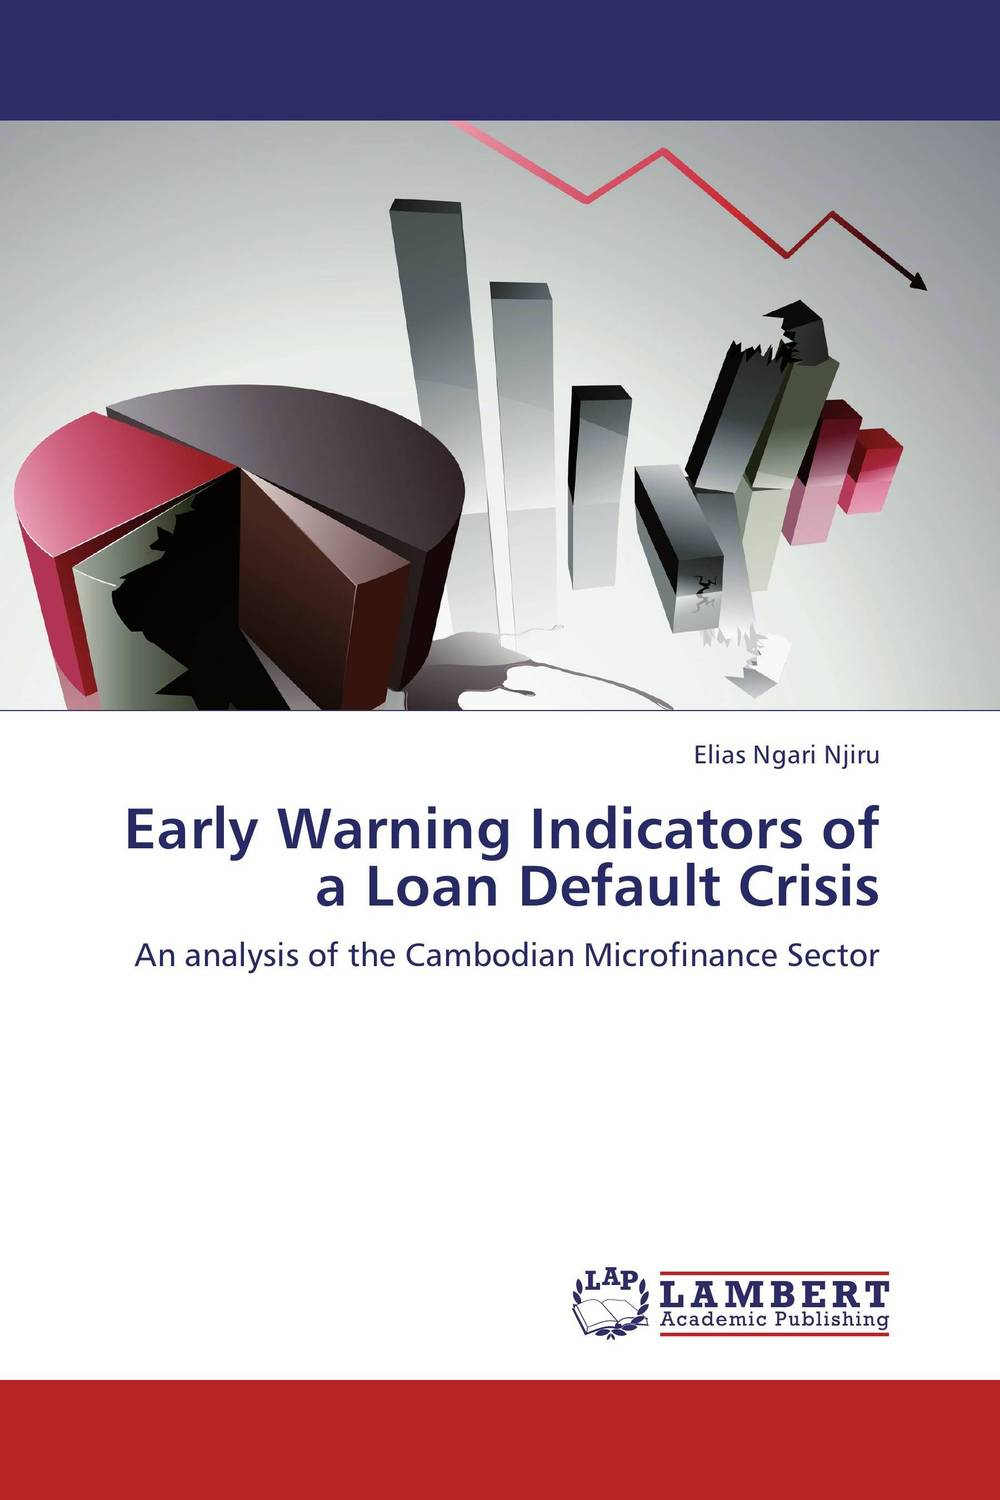 Early Warning Indicators of a Loan Default Crisis мика варбулайнен призрак записки библиотекаря фантасмагория